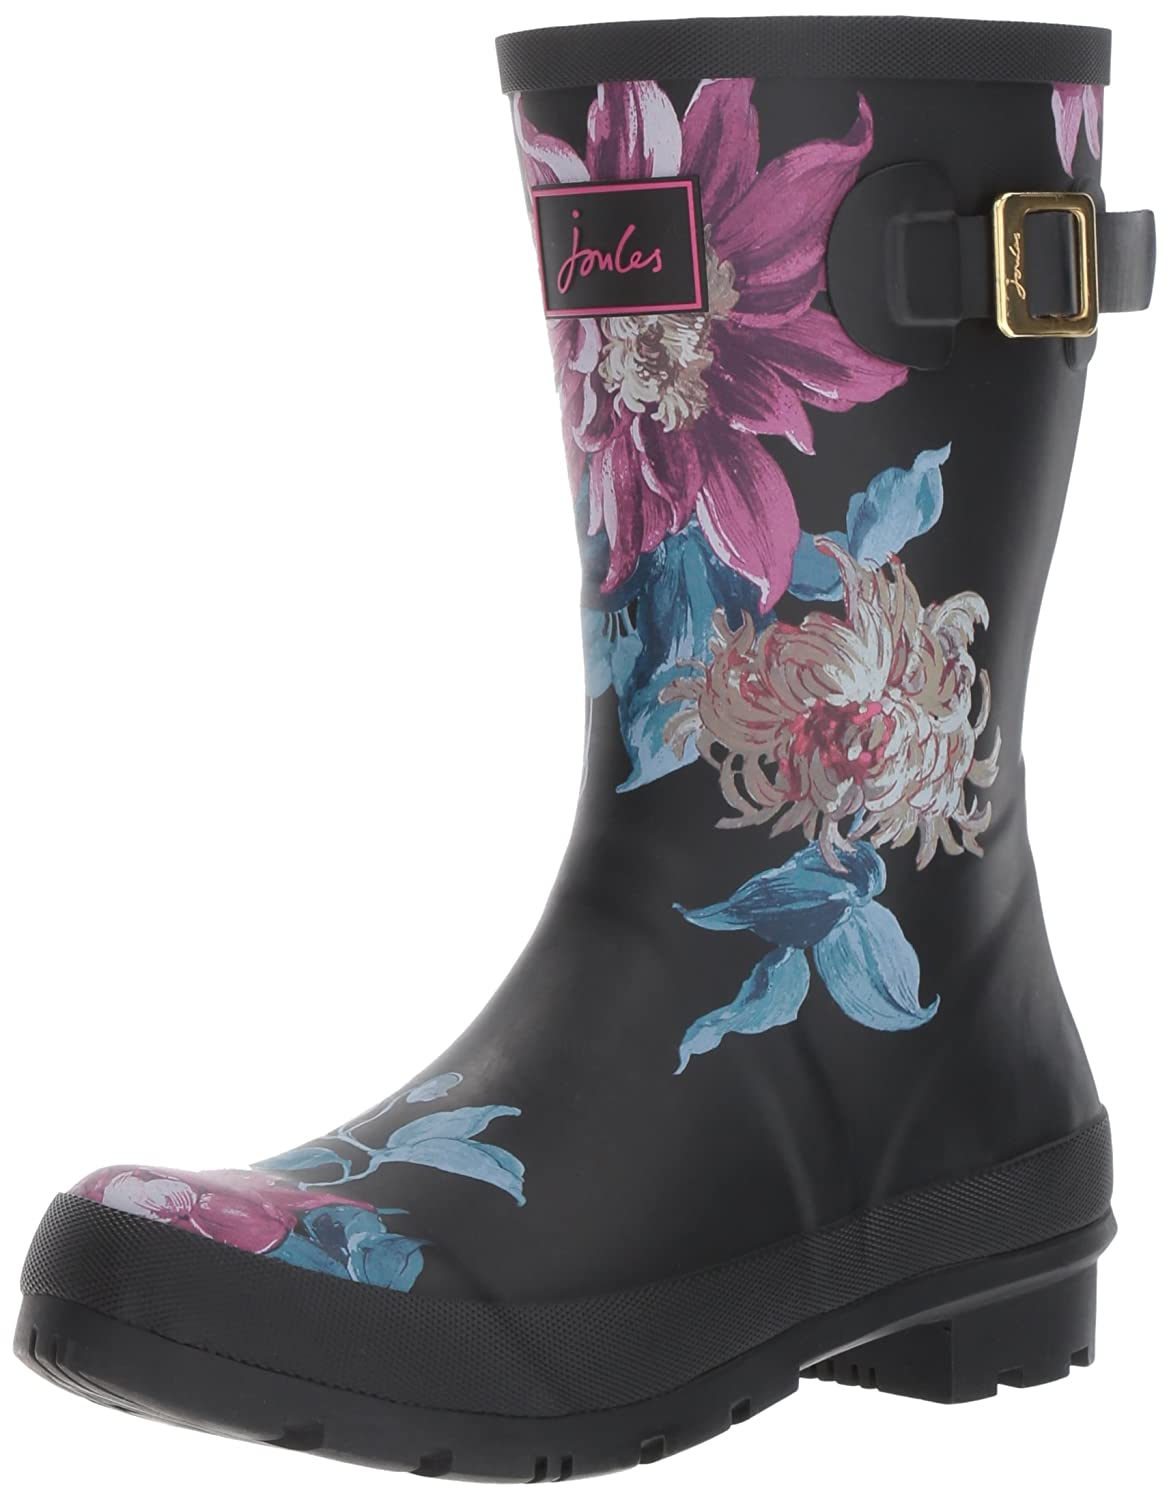 Joules Women's Molly Welly Rain Boot B06WP4FQ1Y 10 B(M) US|Black Clematis